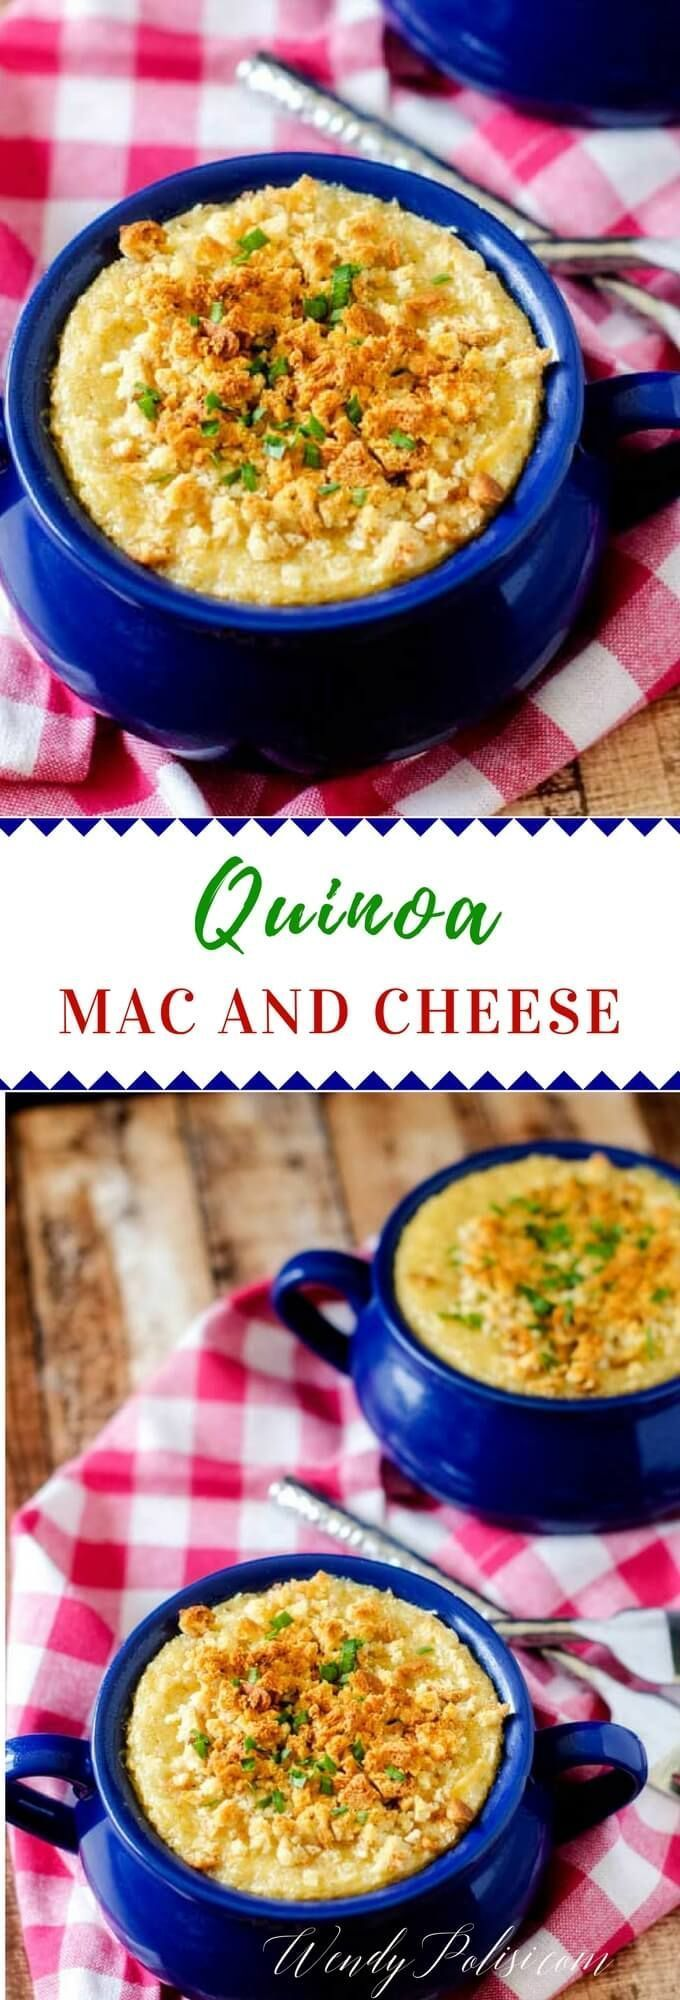 Mac and Cheese This Quinoa Mac n Cheese offers all the creamy yumminess of traditional Mac n Cheese with the health benefits of quinoa. A favorite quinoa recipe for kids. via @wendypolisiThis Quinoa Mac n Cheese offers all the creamy yumminess of traditional Mac n Cheese with the health benefits of quinoa. A favorite quinoa recipe for ...